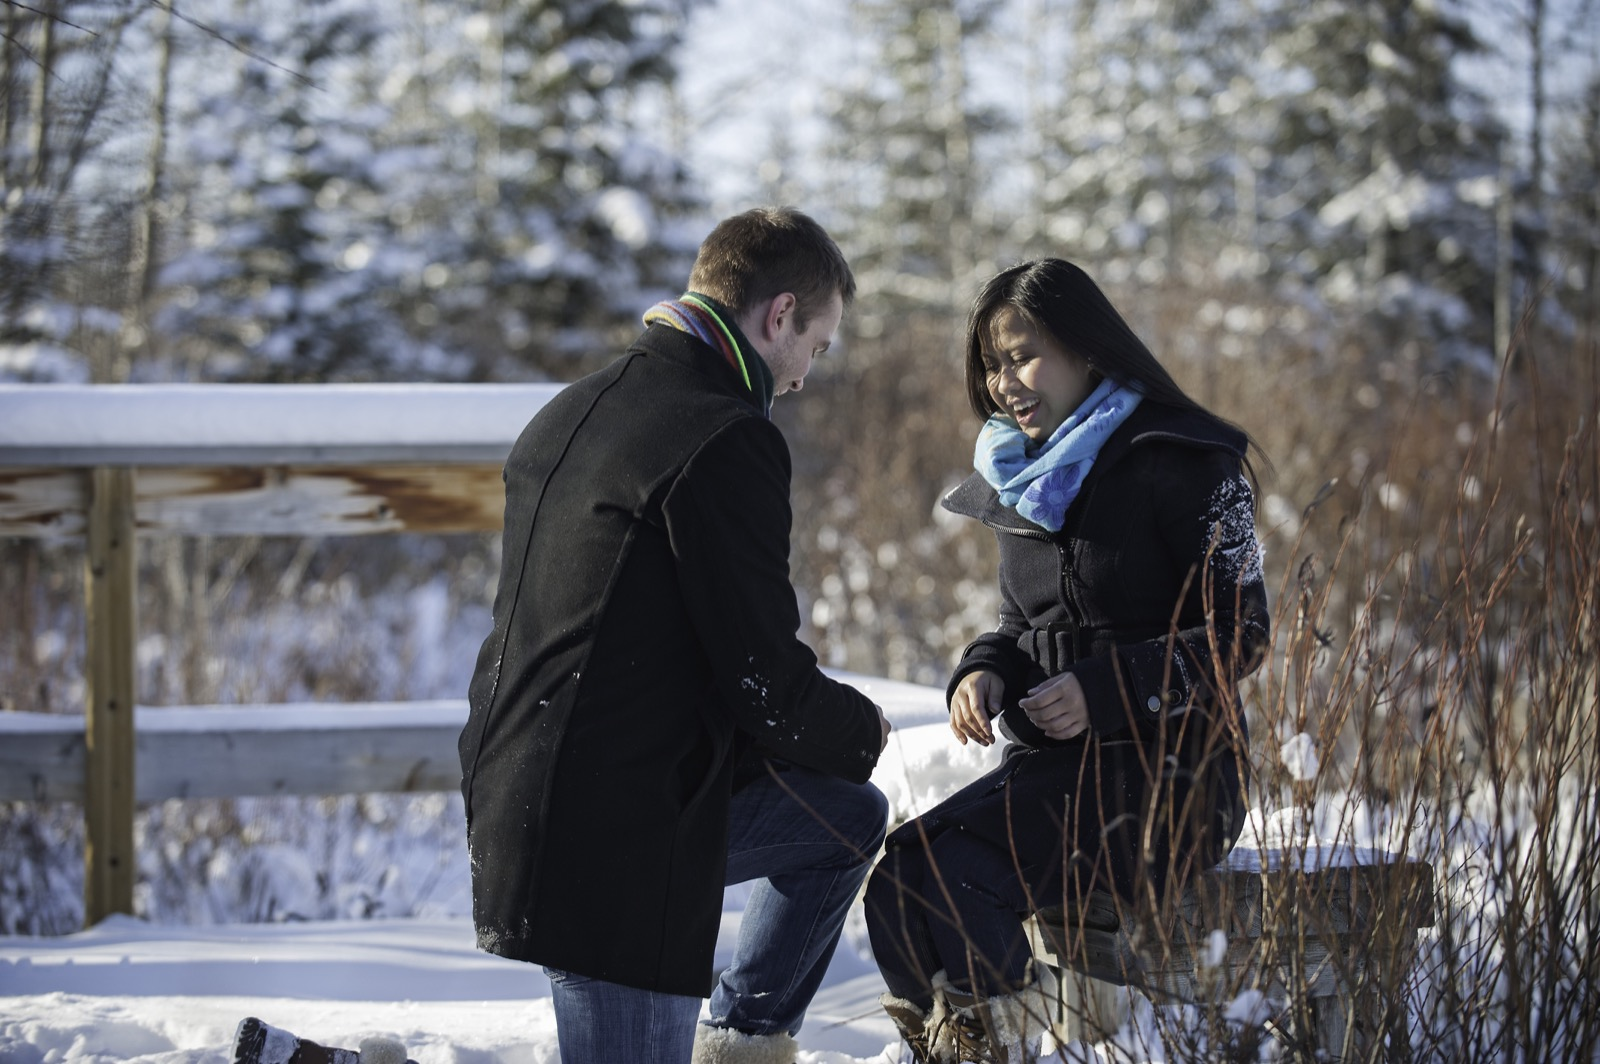 victoria-wedding-photographers-calgary-winter-engagement-proposal-14.jpg